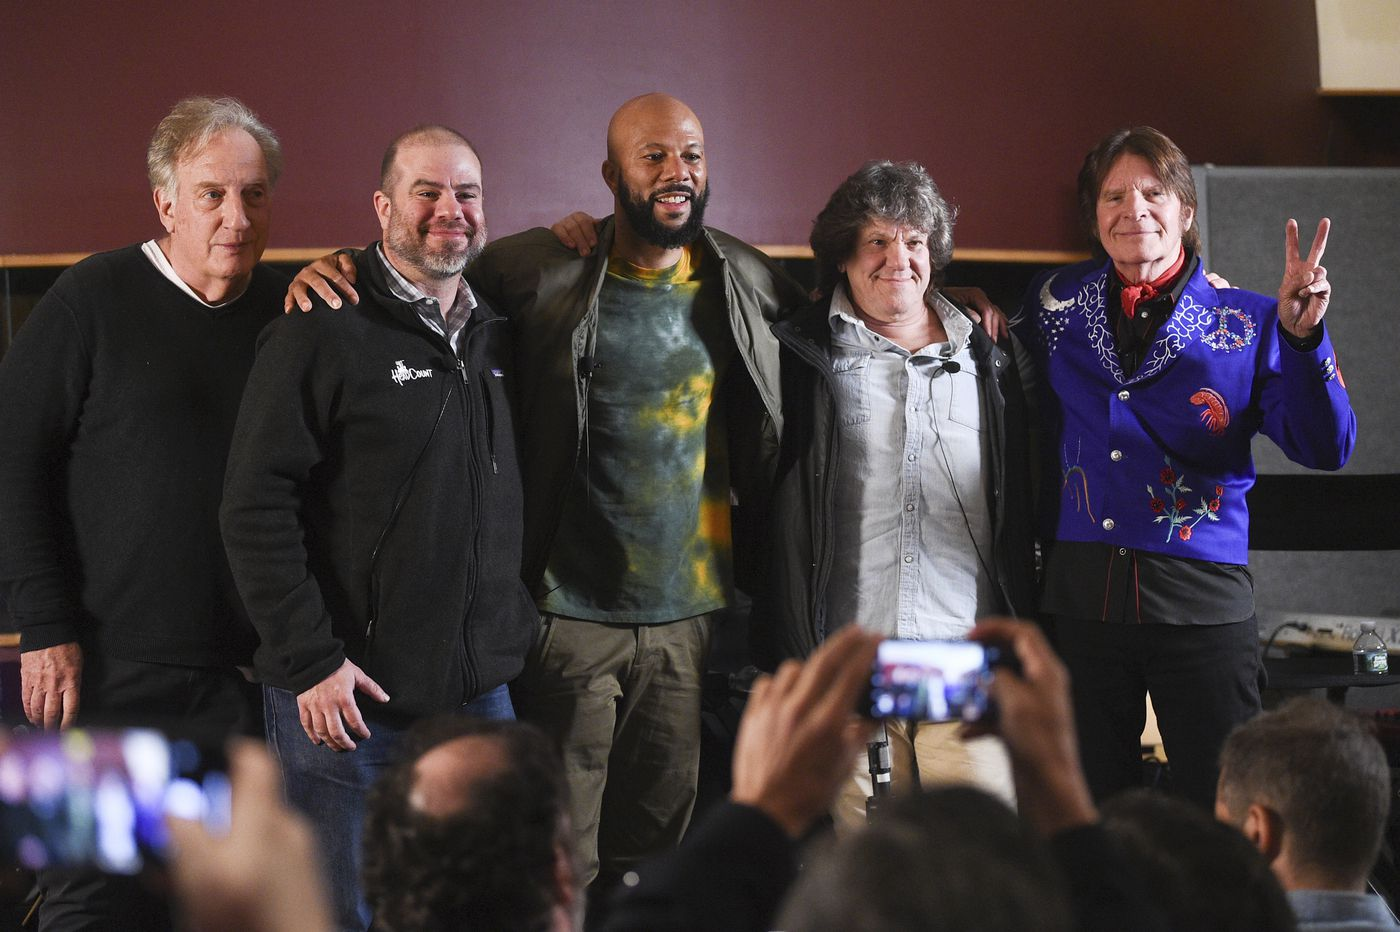 Woodstock 50 plans roll on; court nixes cancellation bid